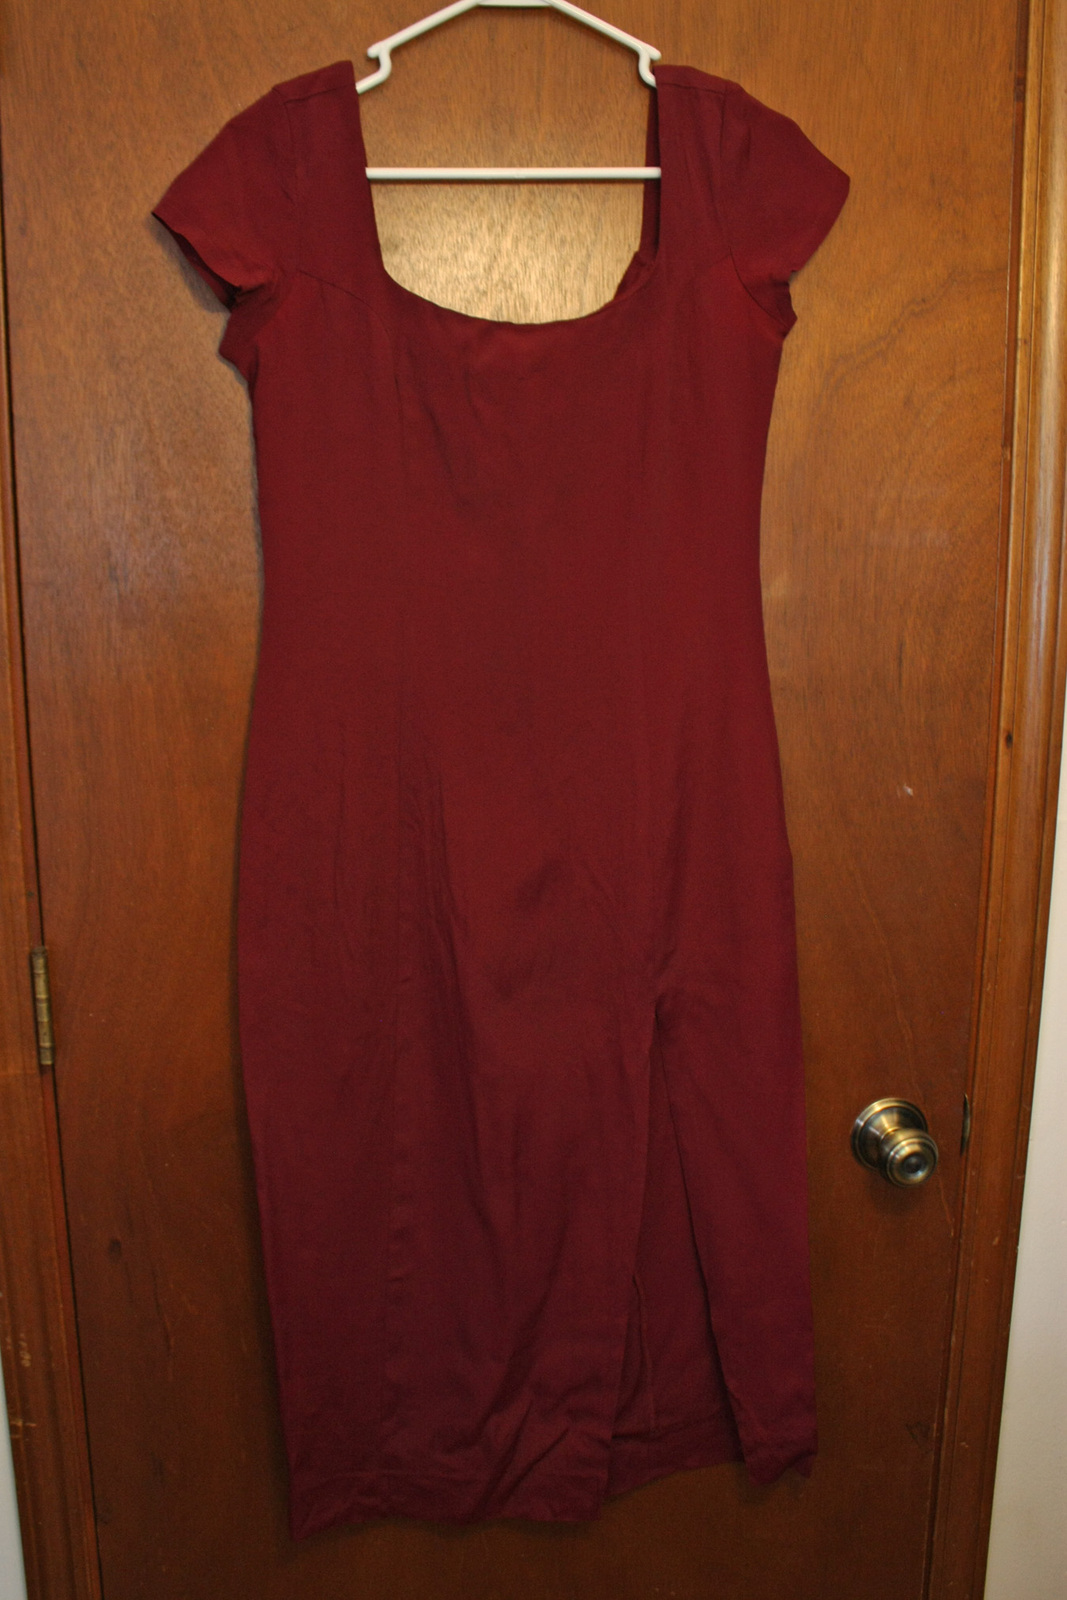 Primary image for French Connection Burgundy Red Dress - size 5/6